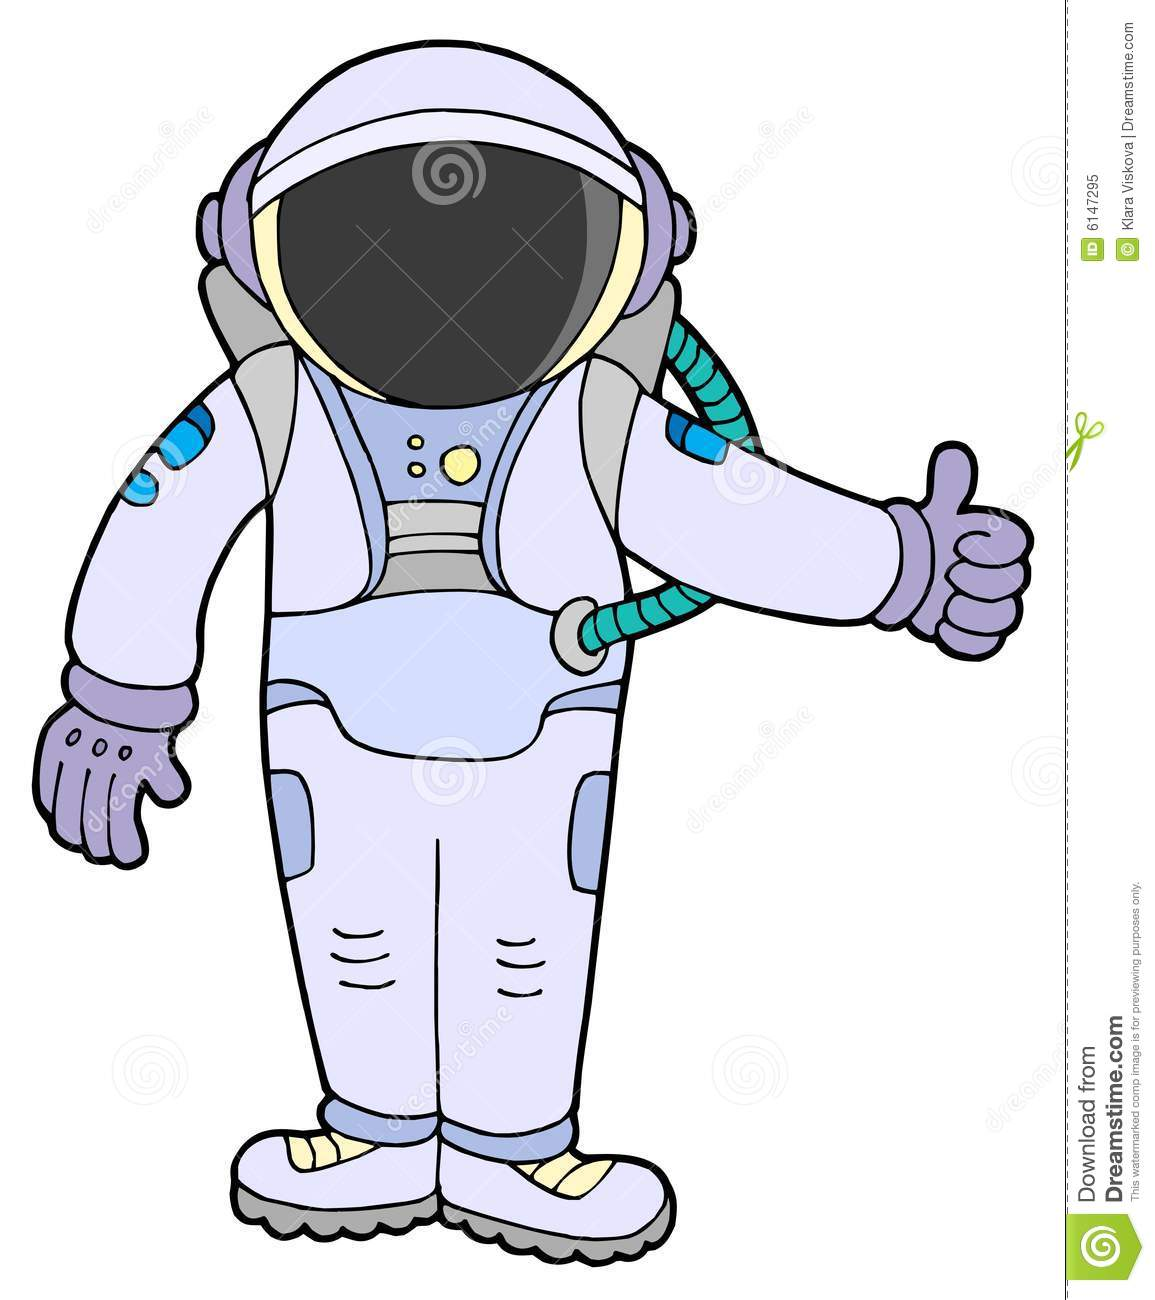 Astronaut Royalty Free Stock Photo.